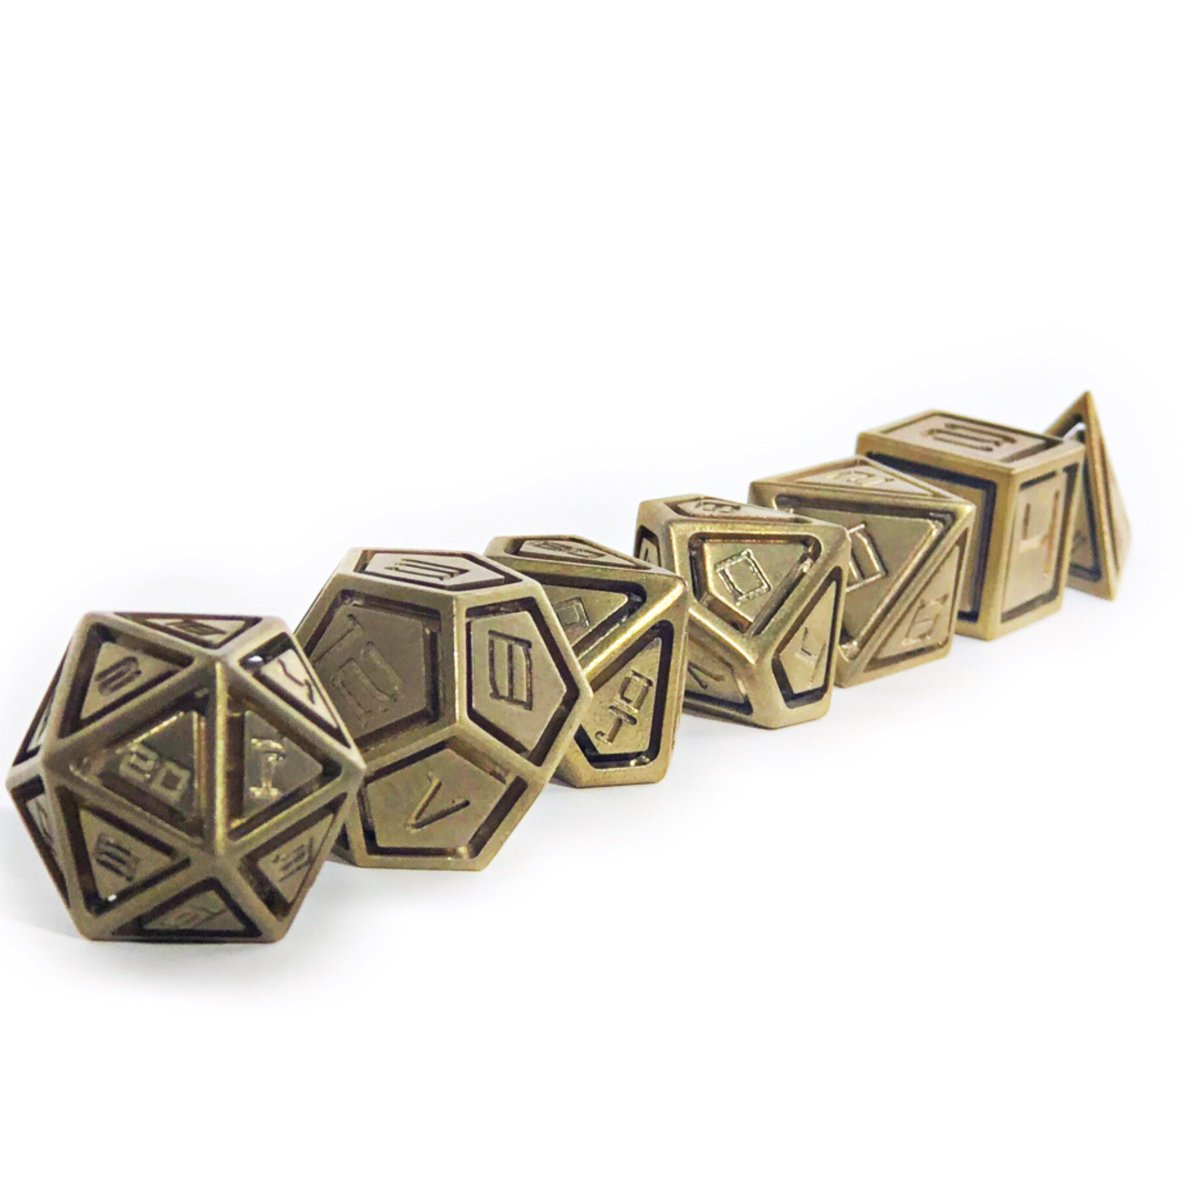 Level Up Dice On Twitter Day 3 Lucca Comic And Games You Can Find Us At Booth Car507 Have You See Our Caged Brass This Exclusive Set Will Age With Your Campaign